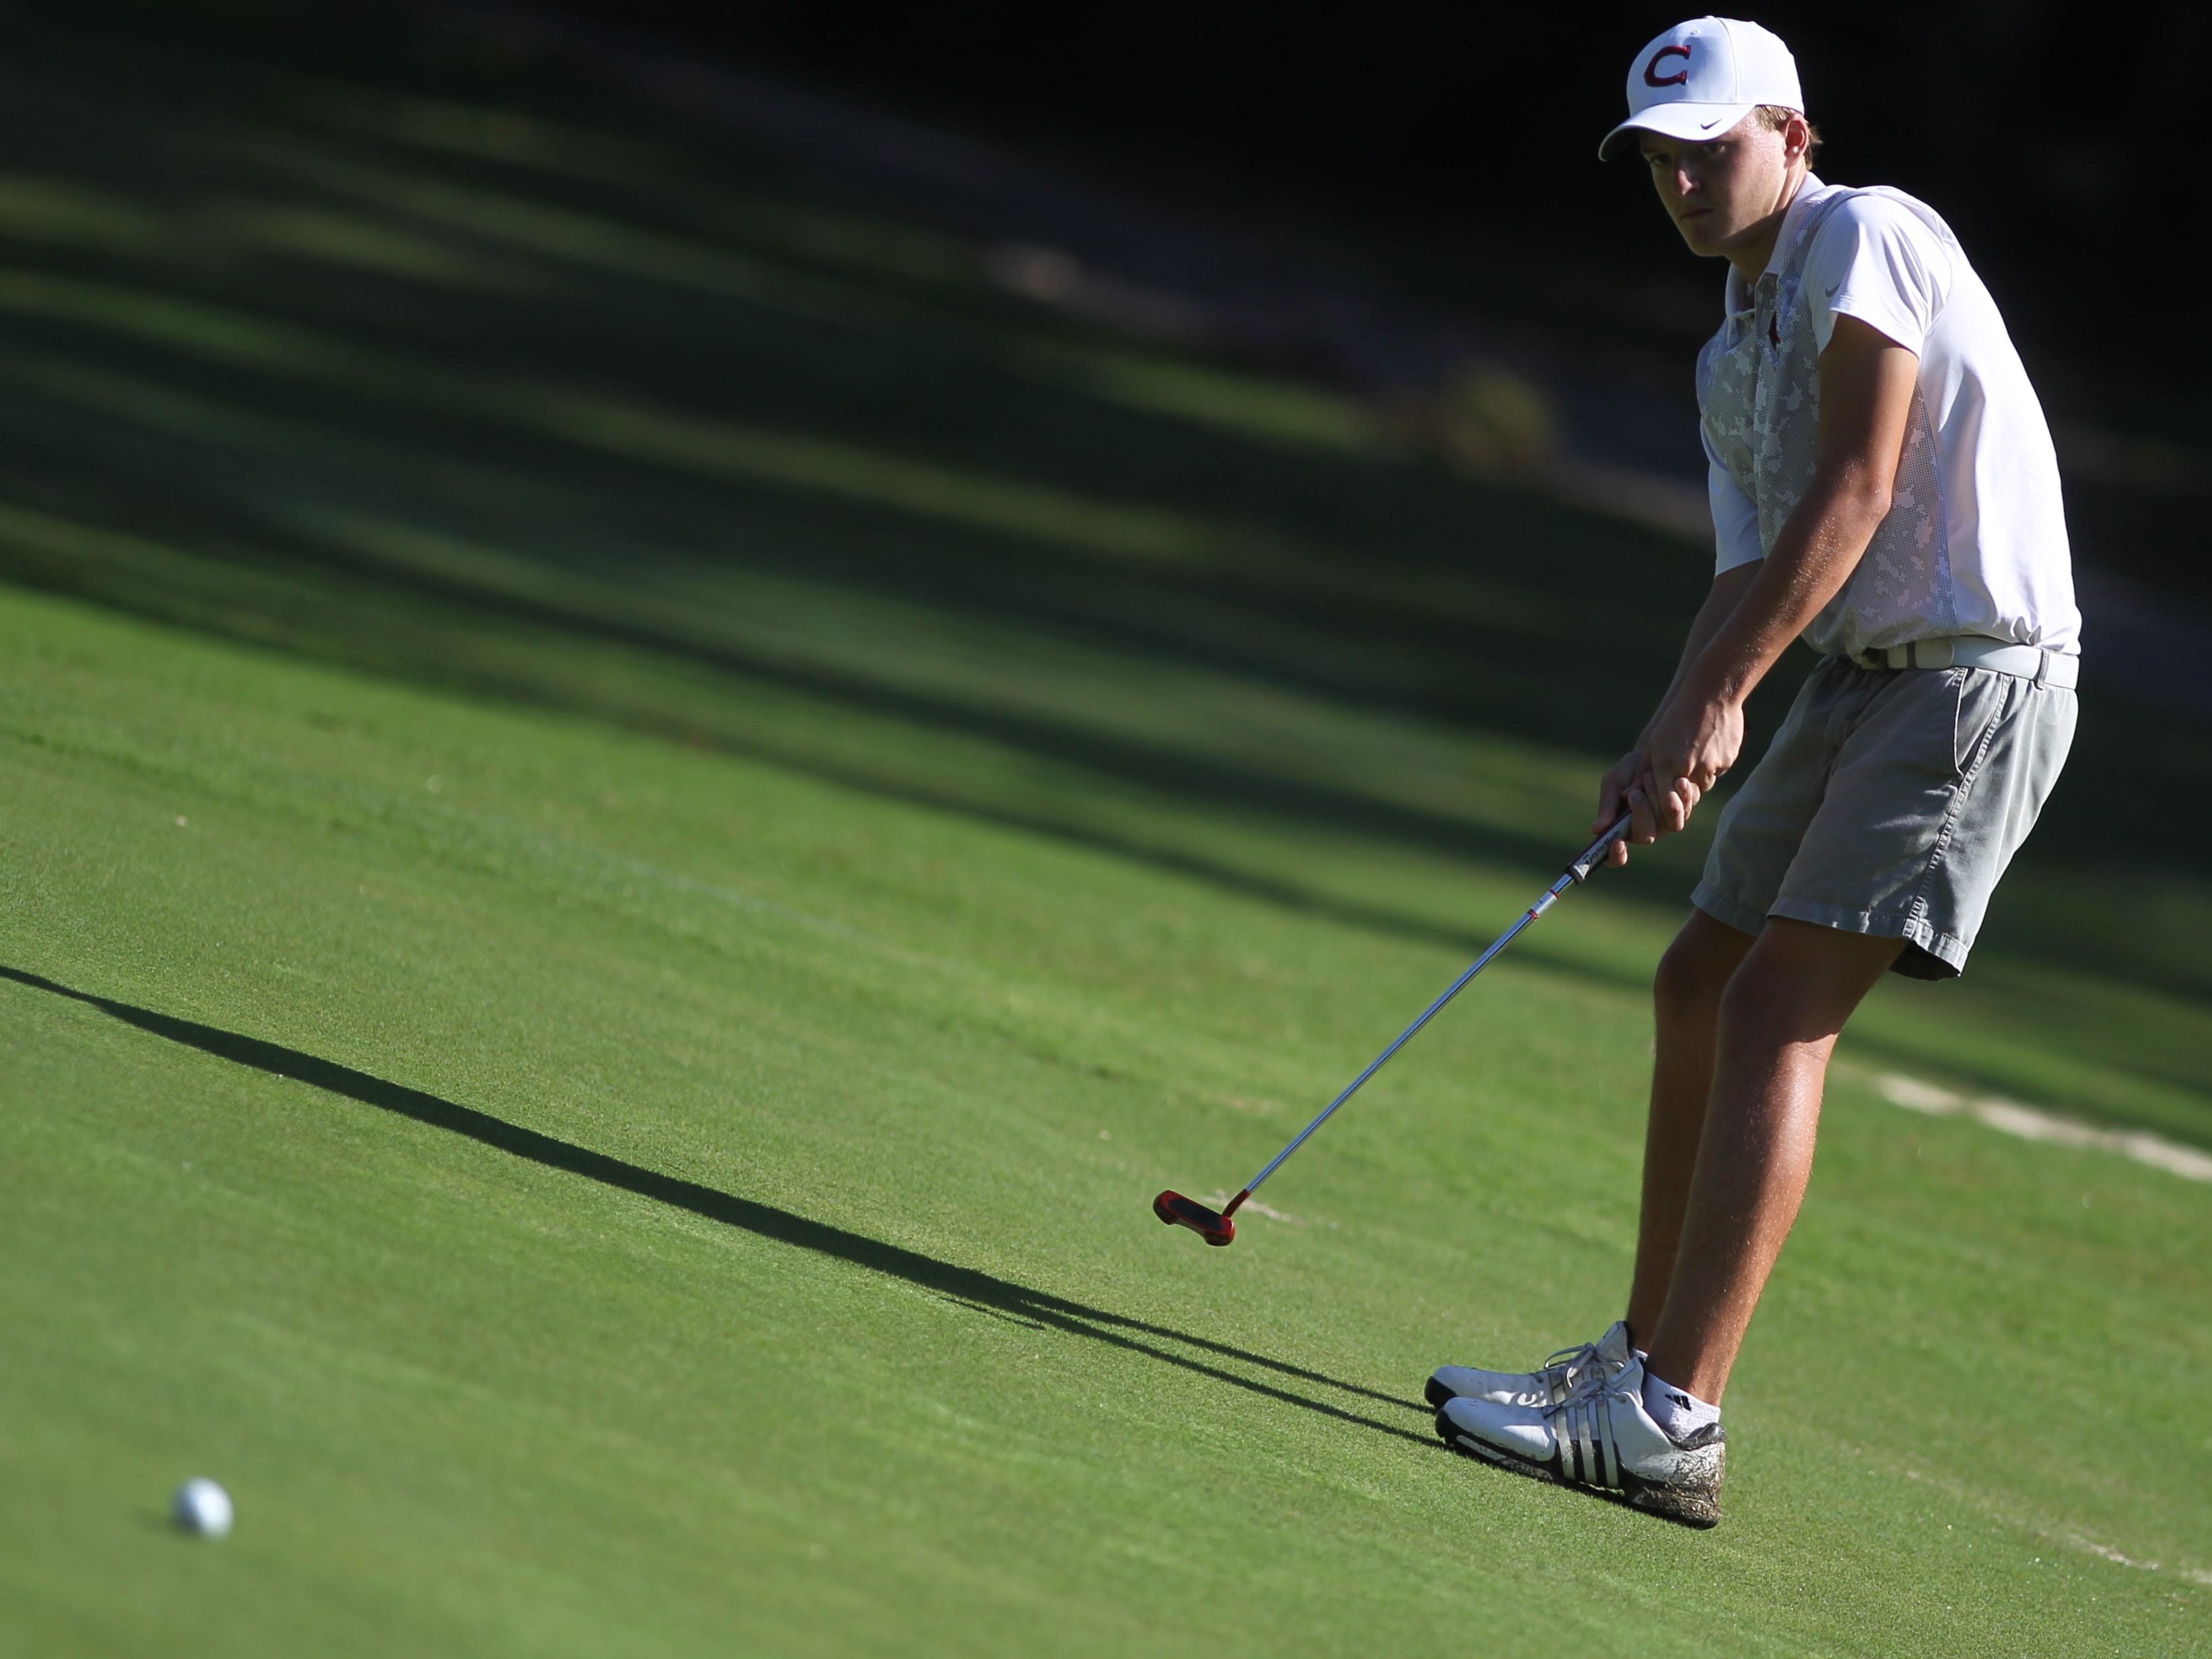 Chiles freshman Parker Bell putts during the District 1-3A boys golf tournament at Hilaman Golf Course. Bell won with a 2-under par 70.